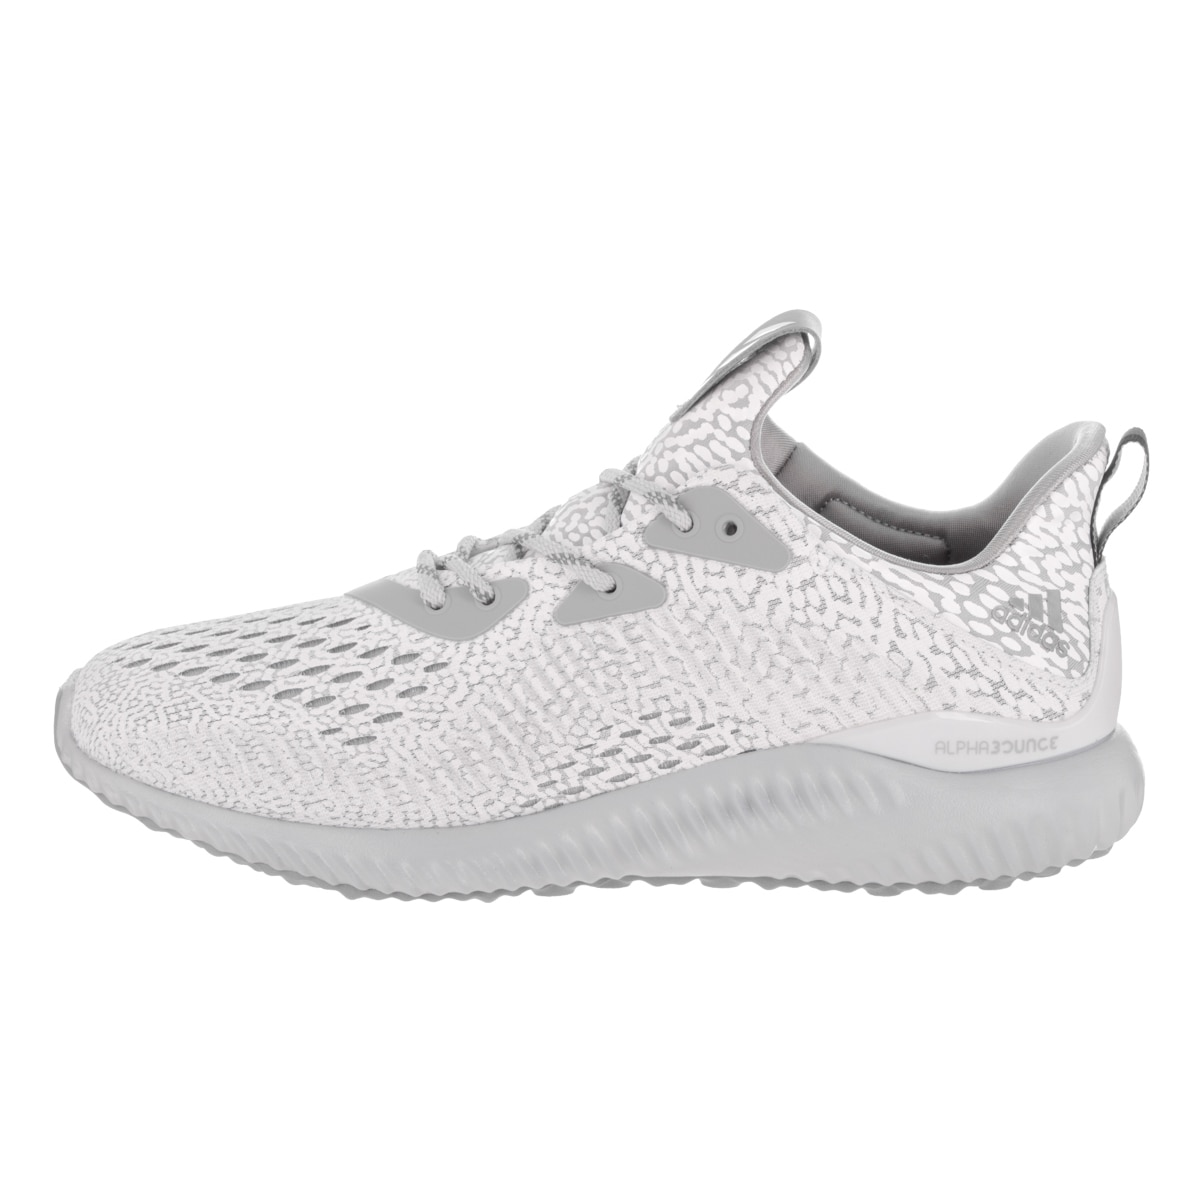 5c539d05489f4 Shop Adidas Women s Alphabounce AMS Grey Mesh Running Shoes - Free Shipping  Today - Overstock - 14548149